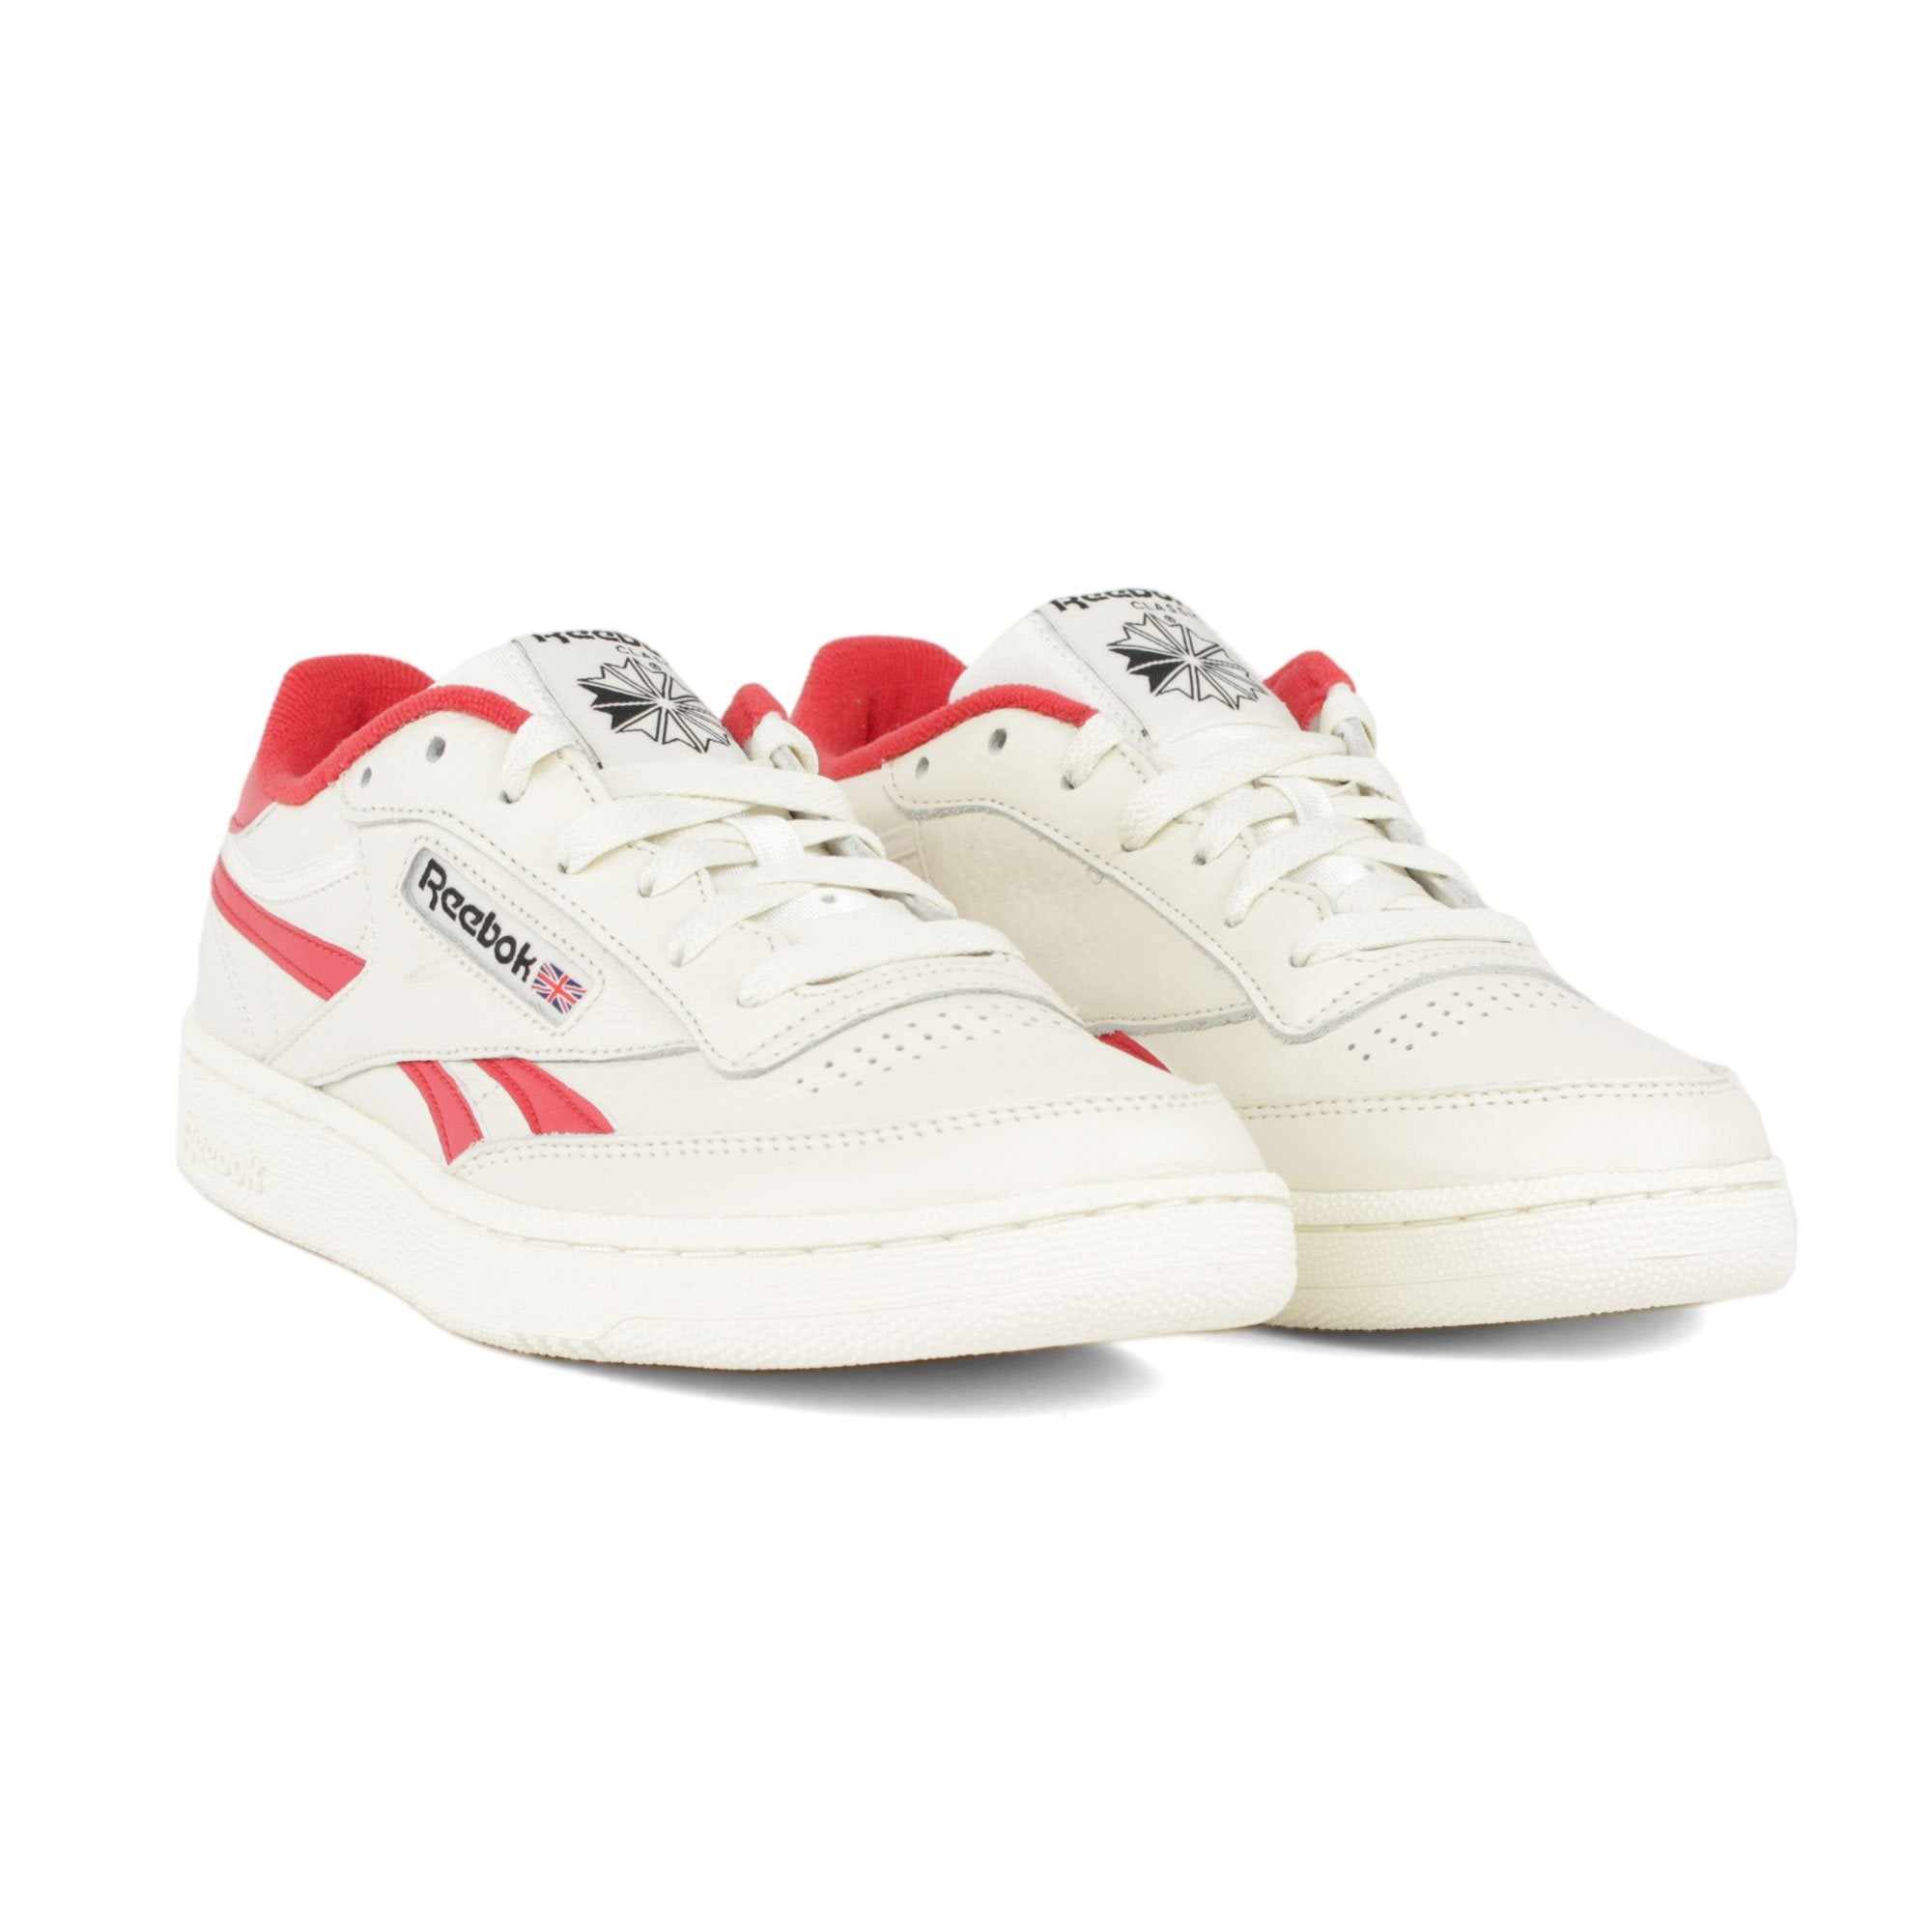 Reebok Club C Revenge MU Product Photo #2